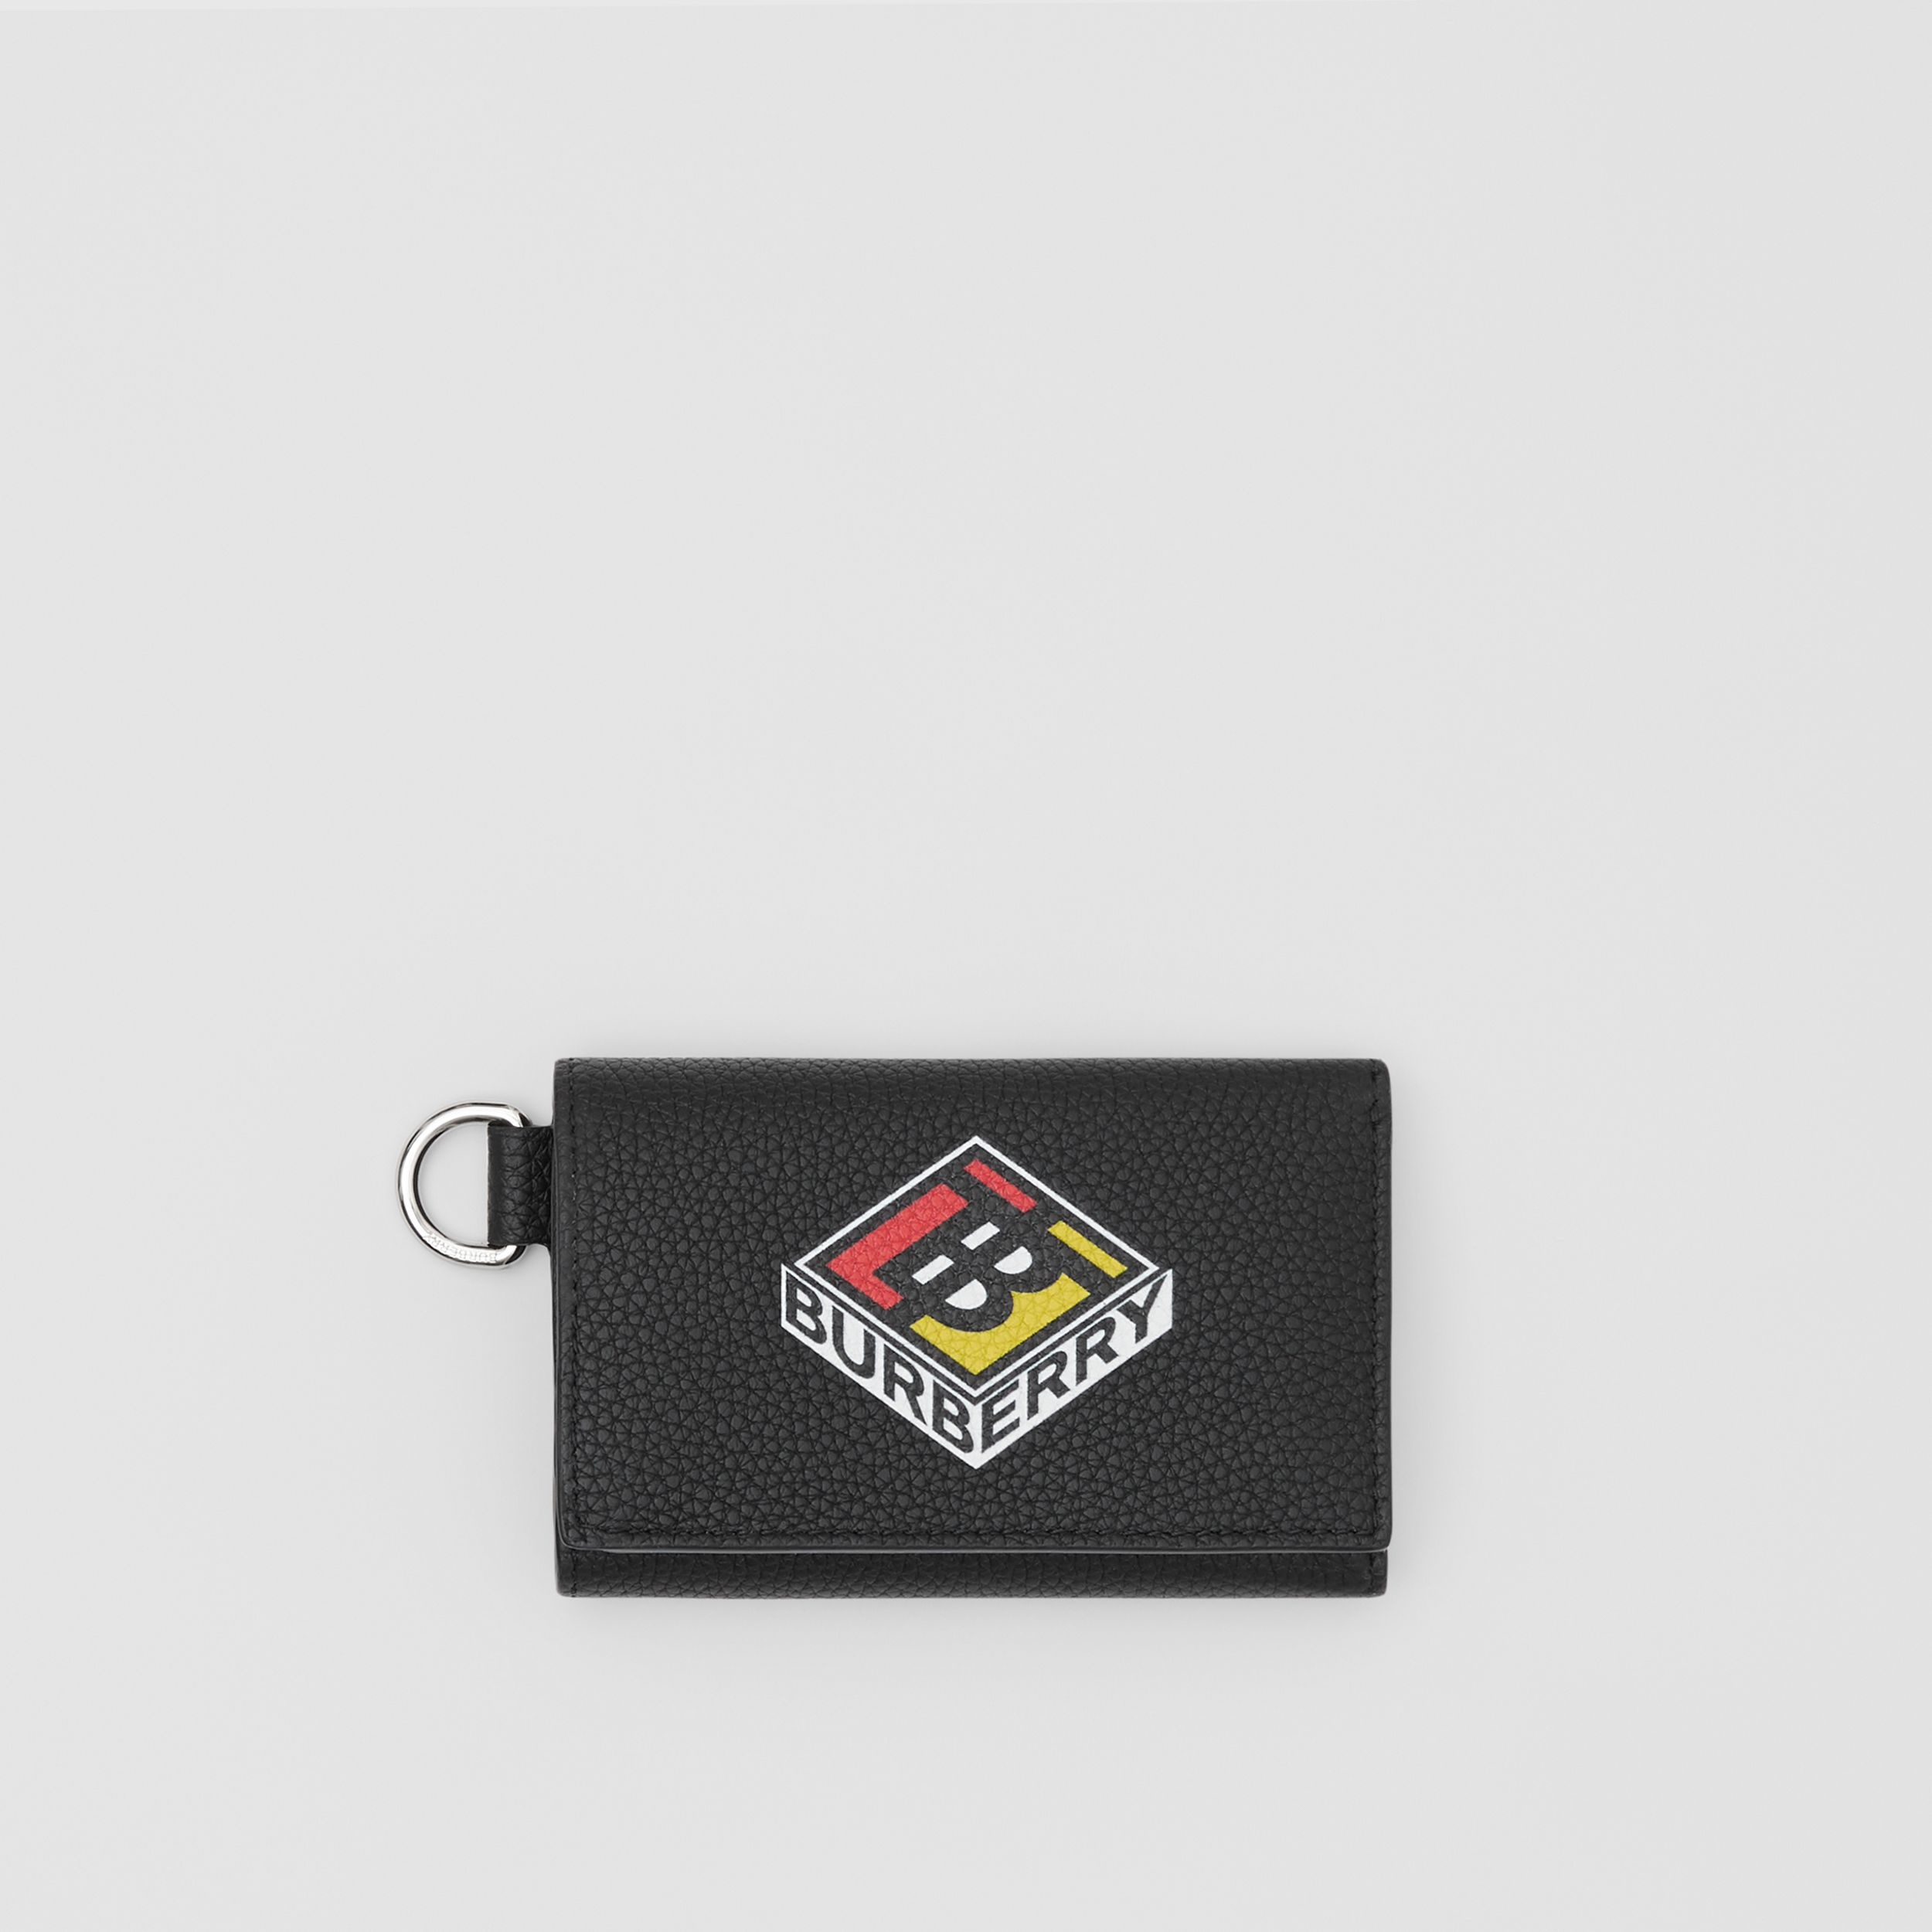 Small Logo Graphic Grainy Leather Folding Wallet in Black - Men | Burberry Hong Kong S.A.R - 1